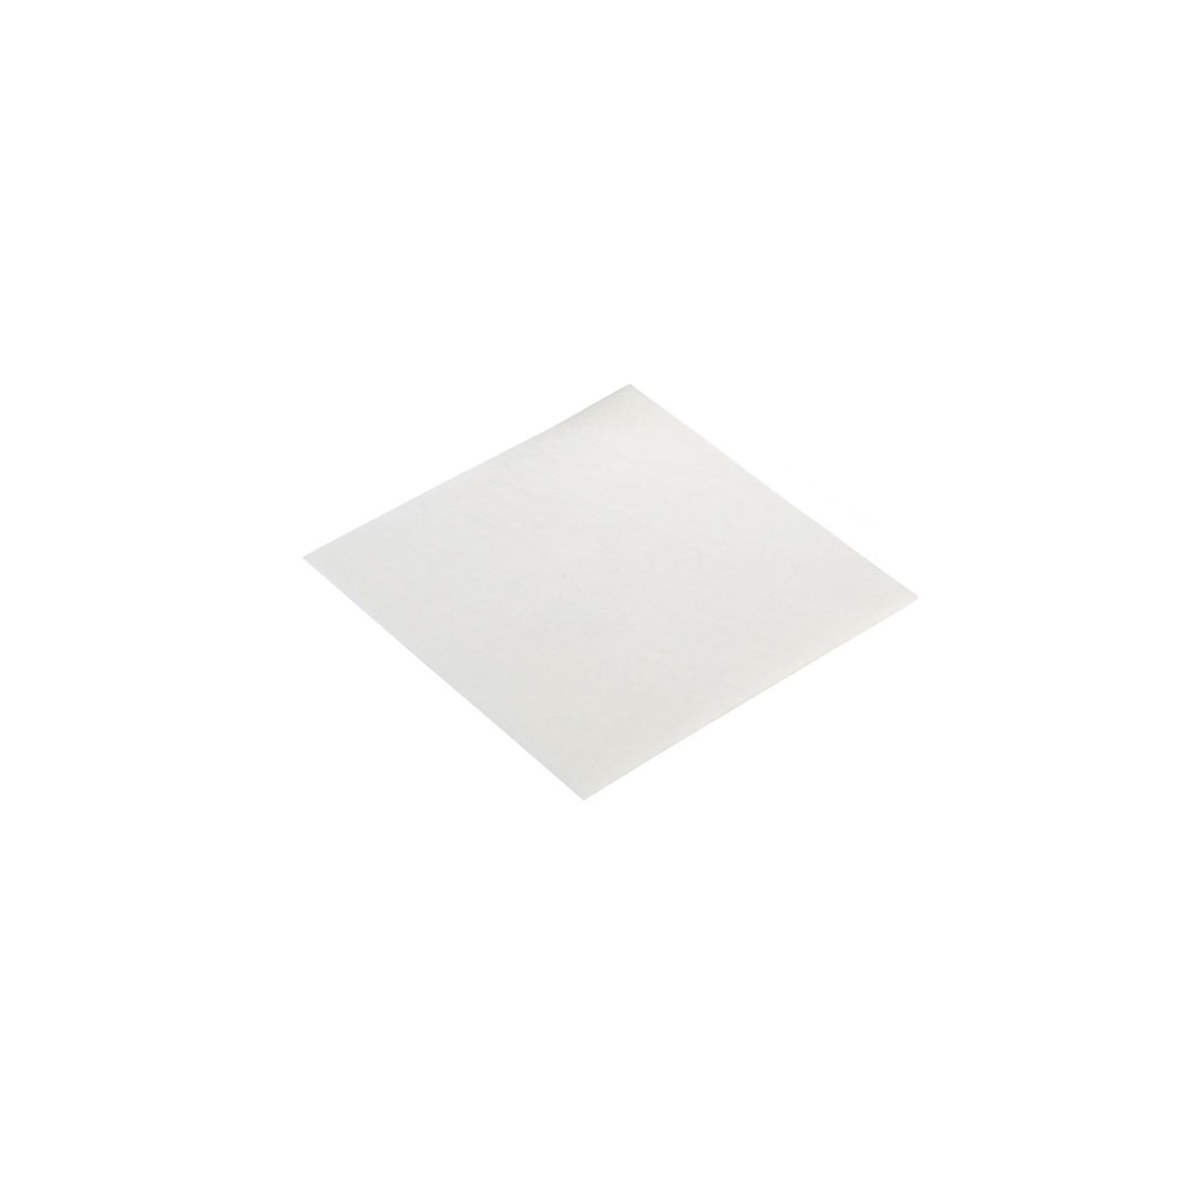 1 x Low-adherent absorbent dressing pad 5 x 5cm